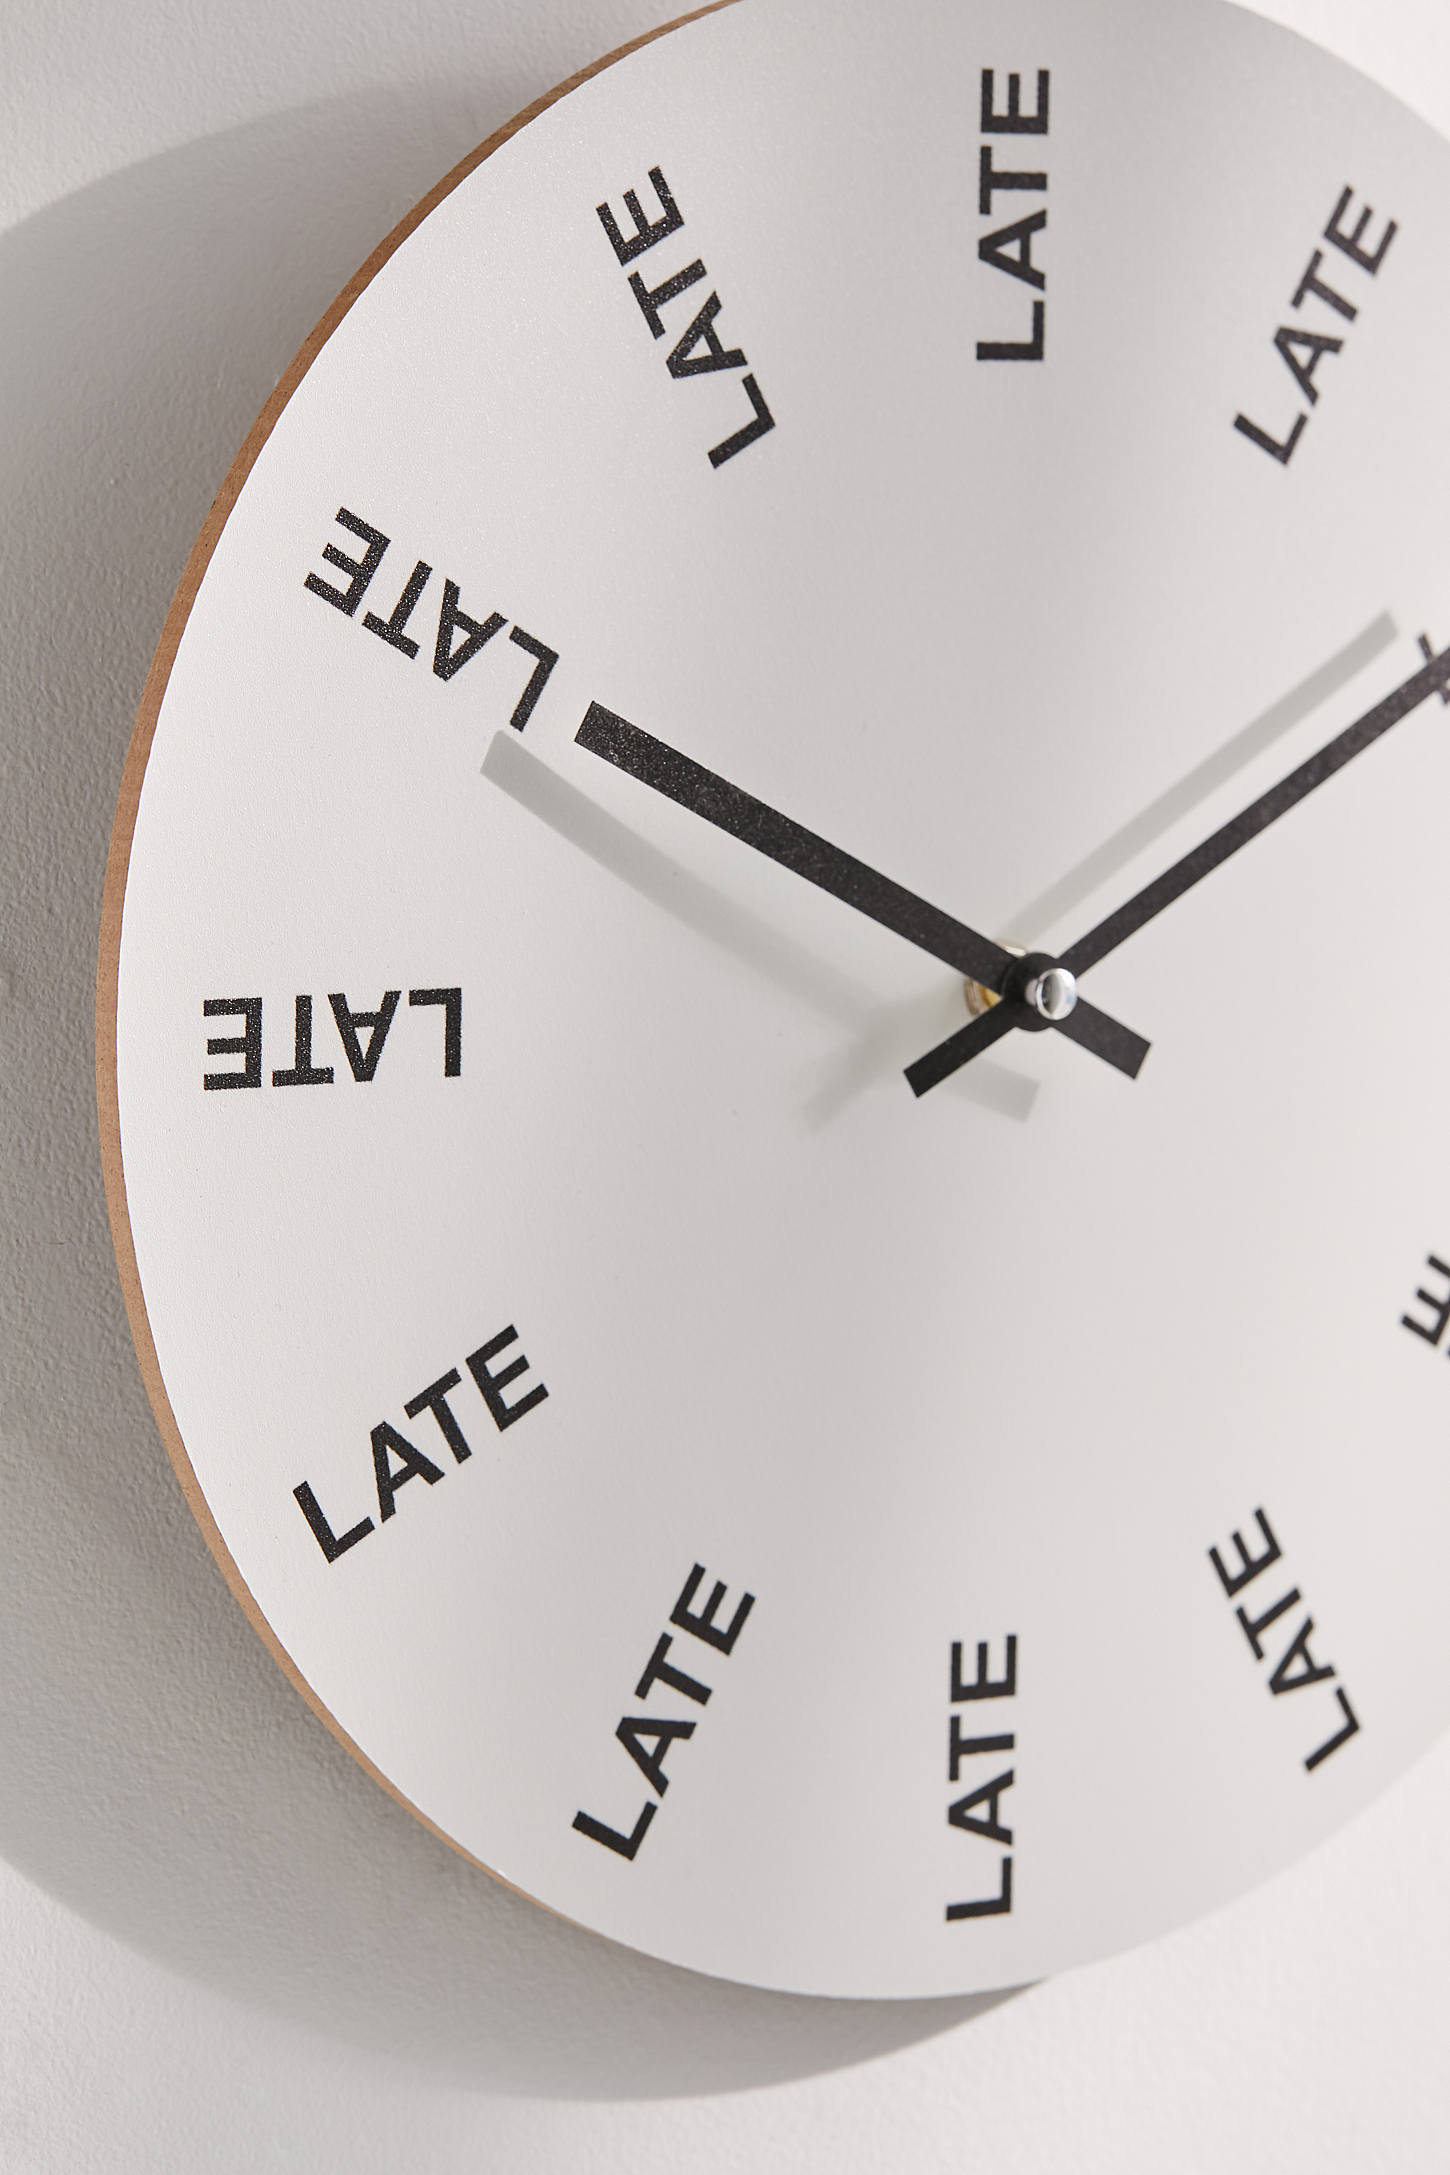 Image result for late clock